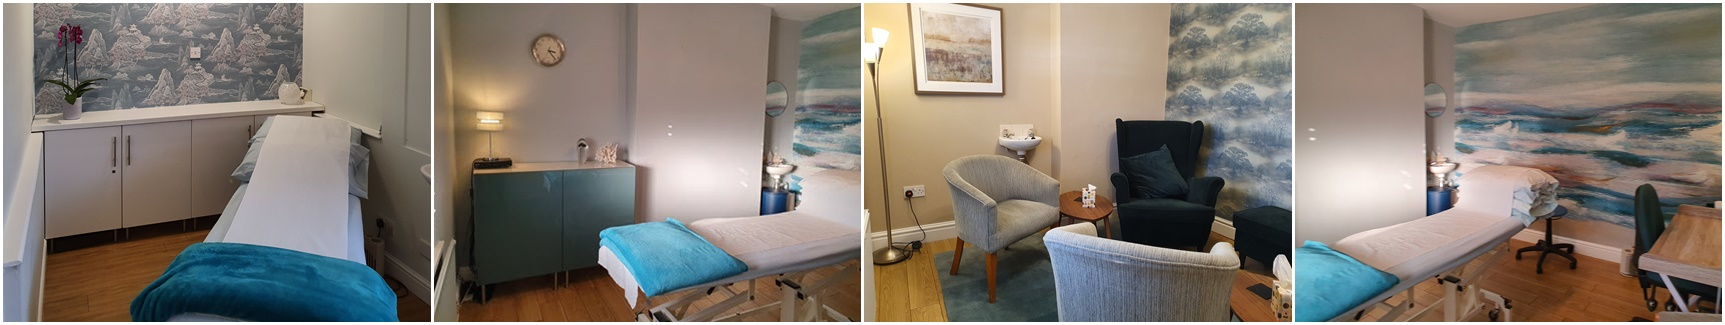 Consulting and therapy rooms for hire - Warrington, Cheshire